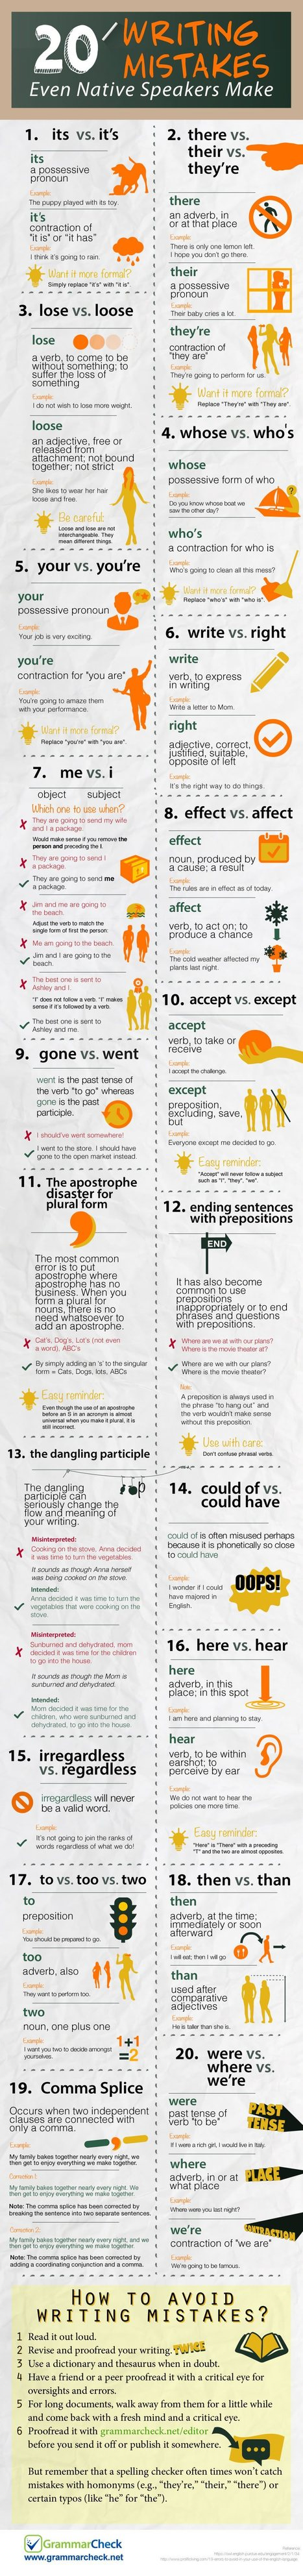 20 Writing Mistakes Even Native Speakers Make #Infographic | social media useful  tools | Scoop.it